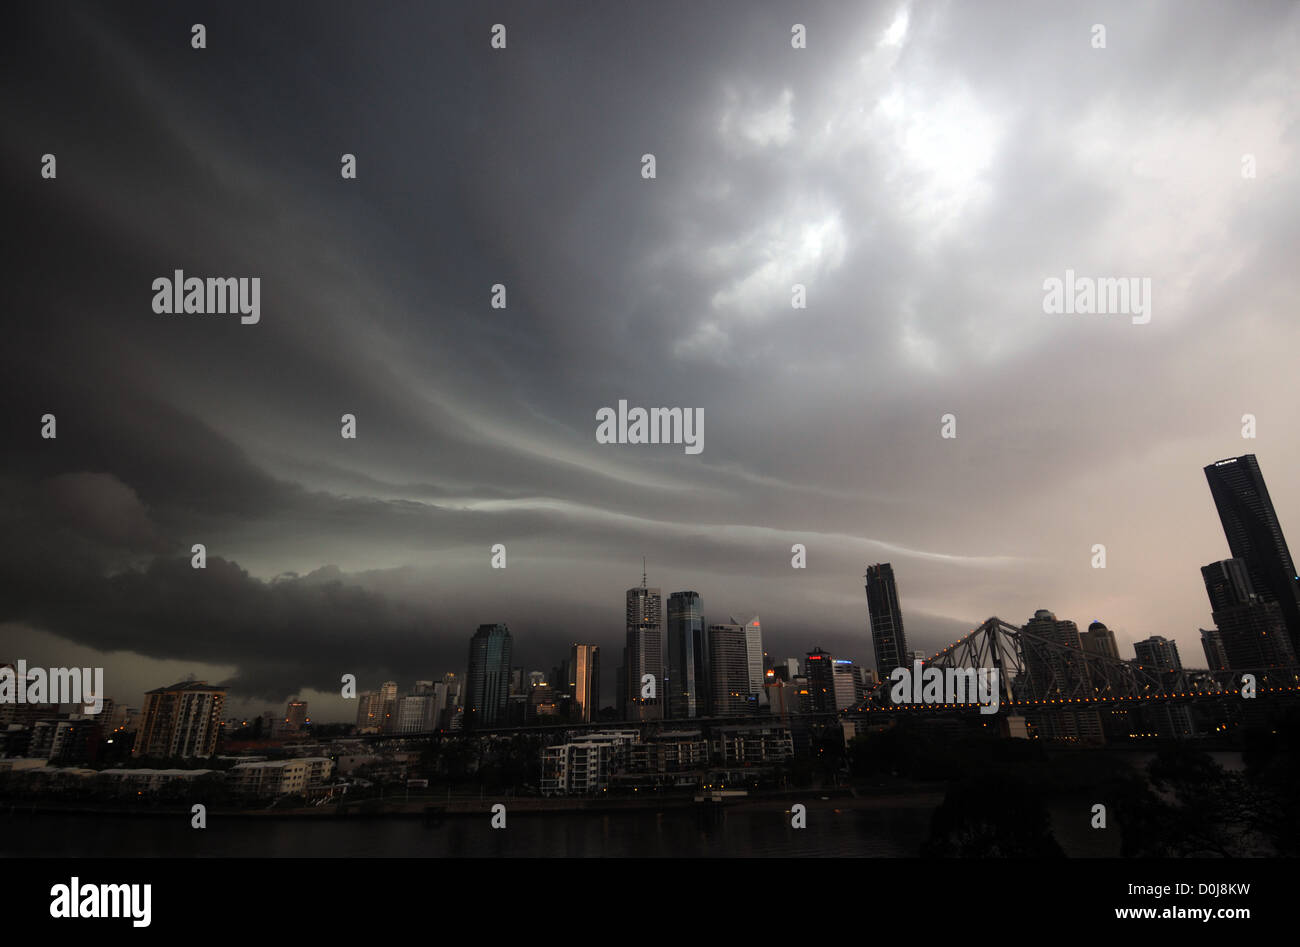 Extreme weather events: hail storm over Brisbane city, Queensland, Australia - Stock Image